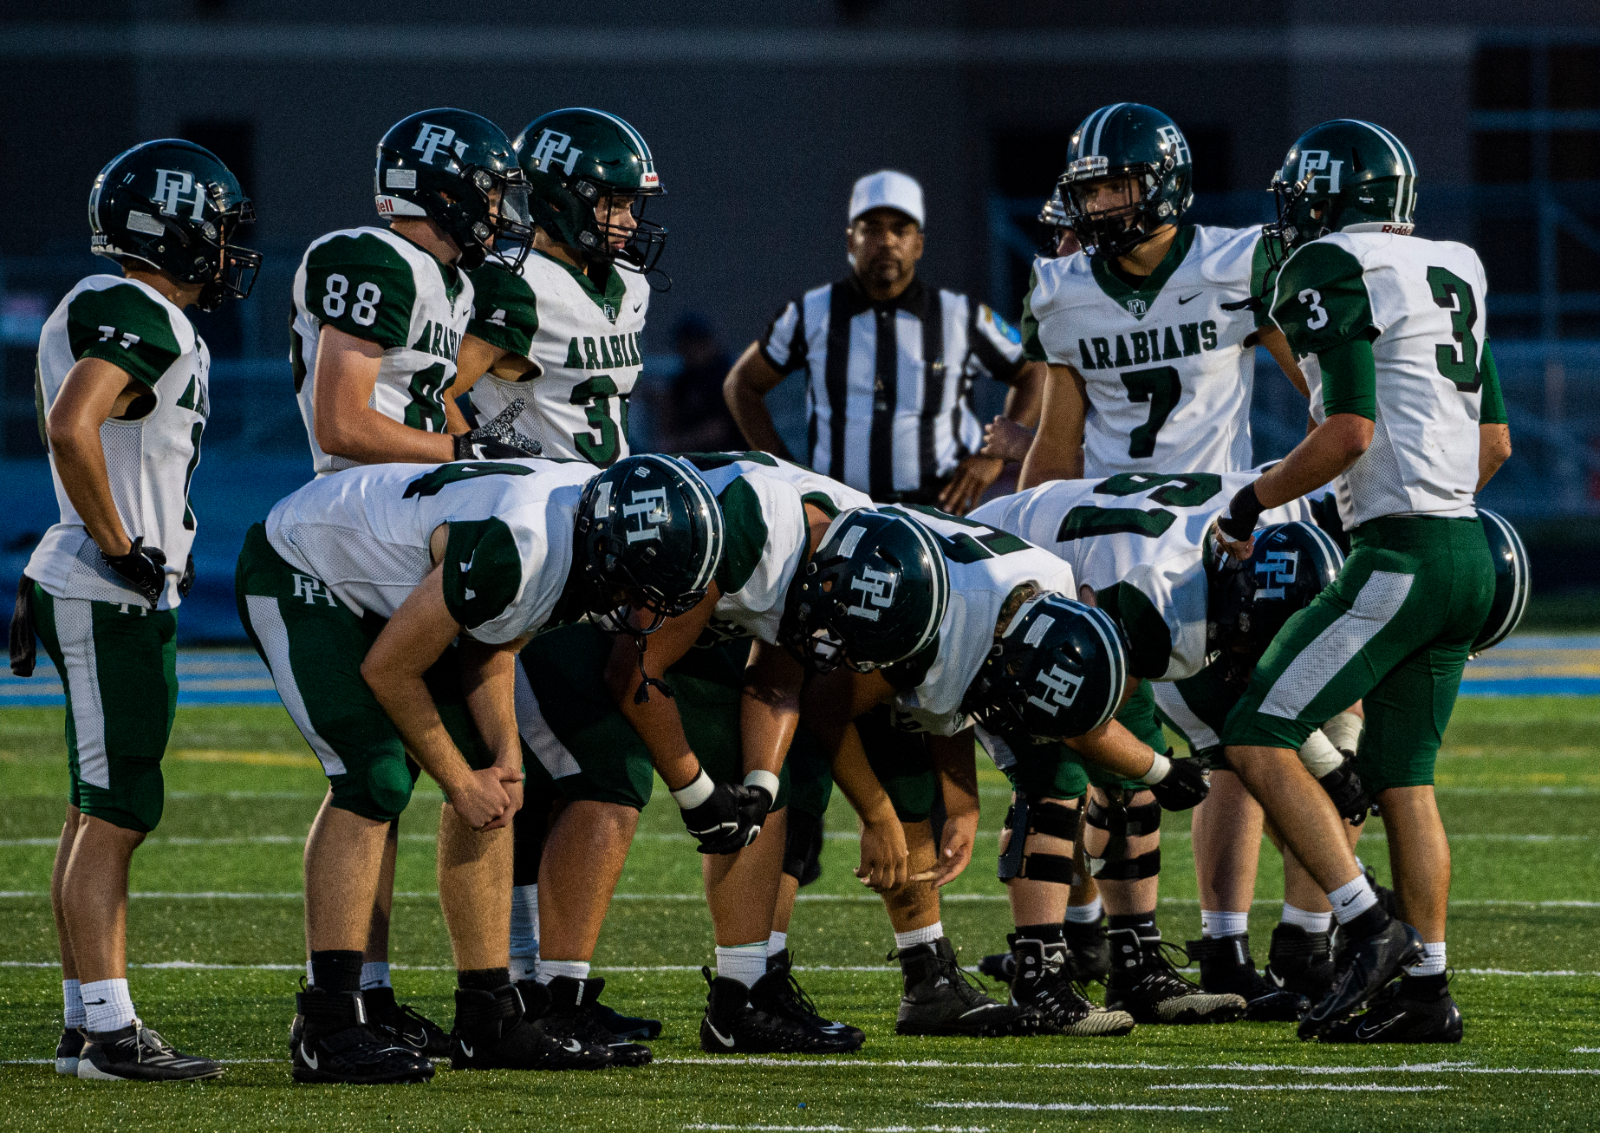 Friday Night Lights: Sectional Opener